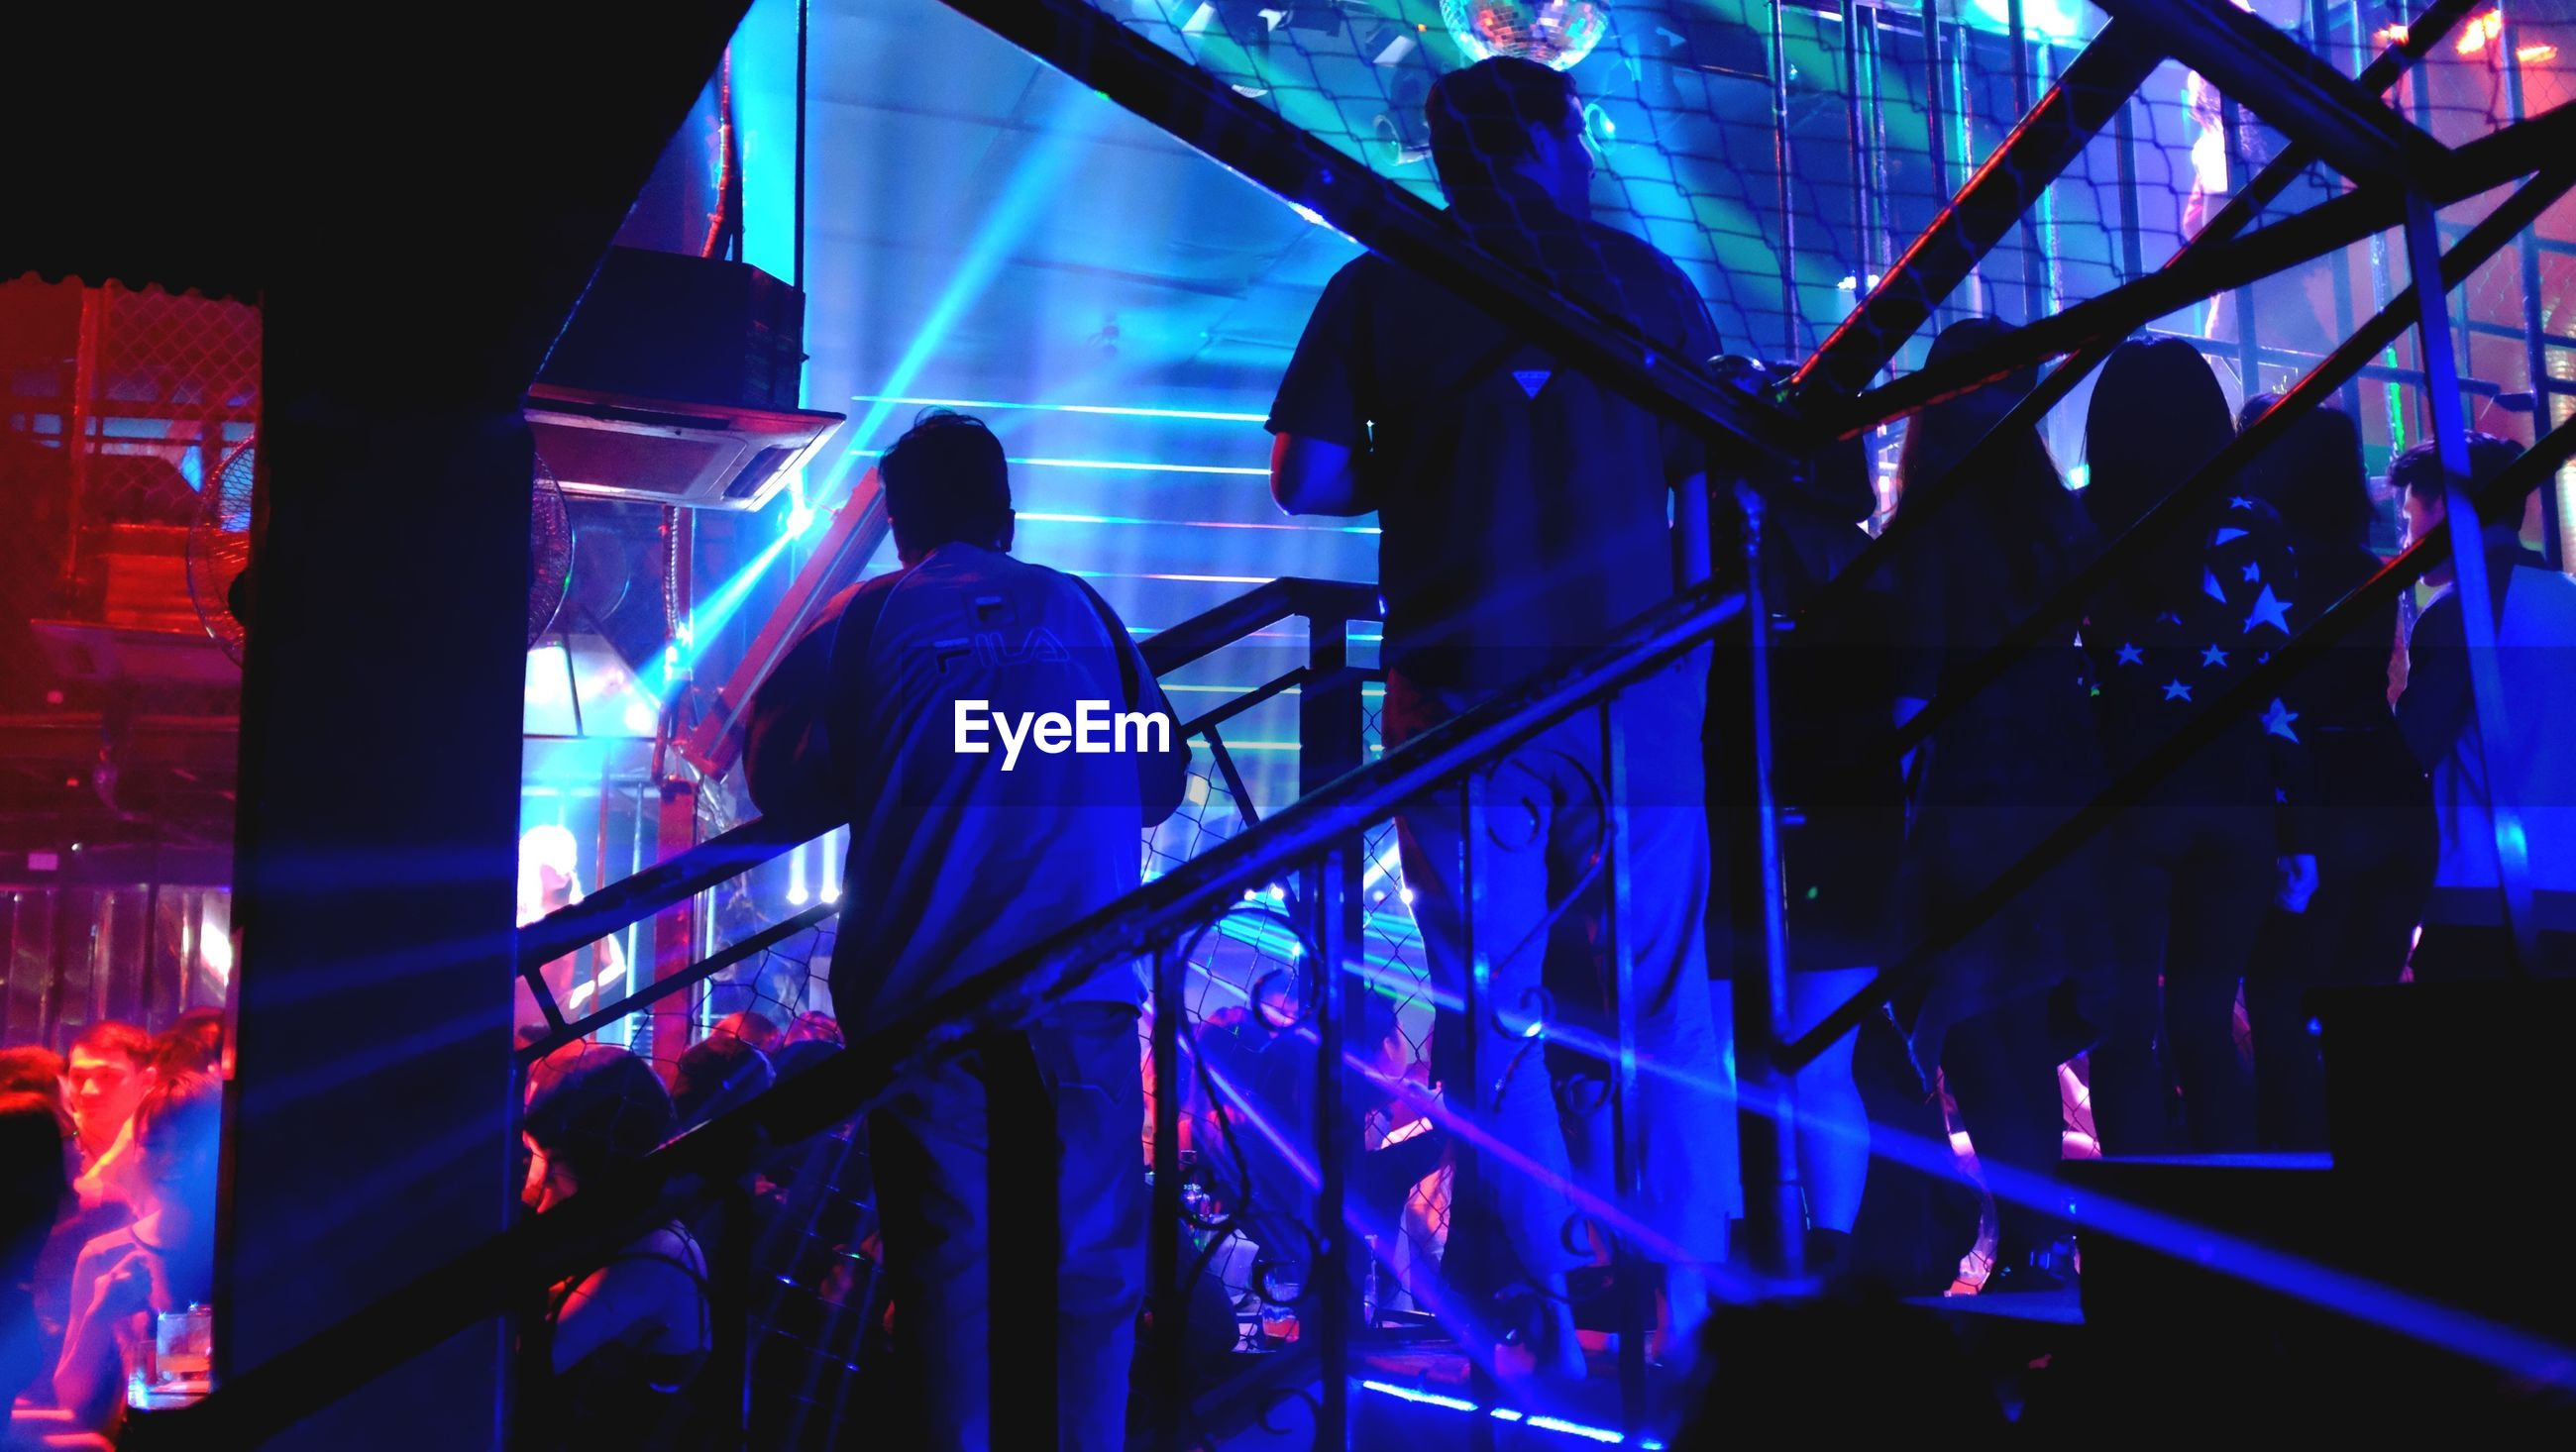 People standing in illuminated nightclub